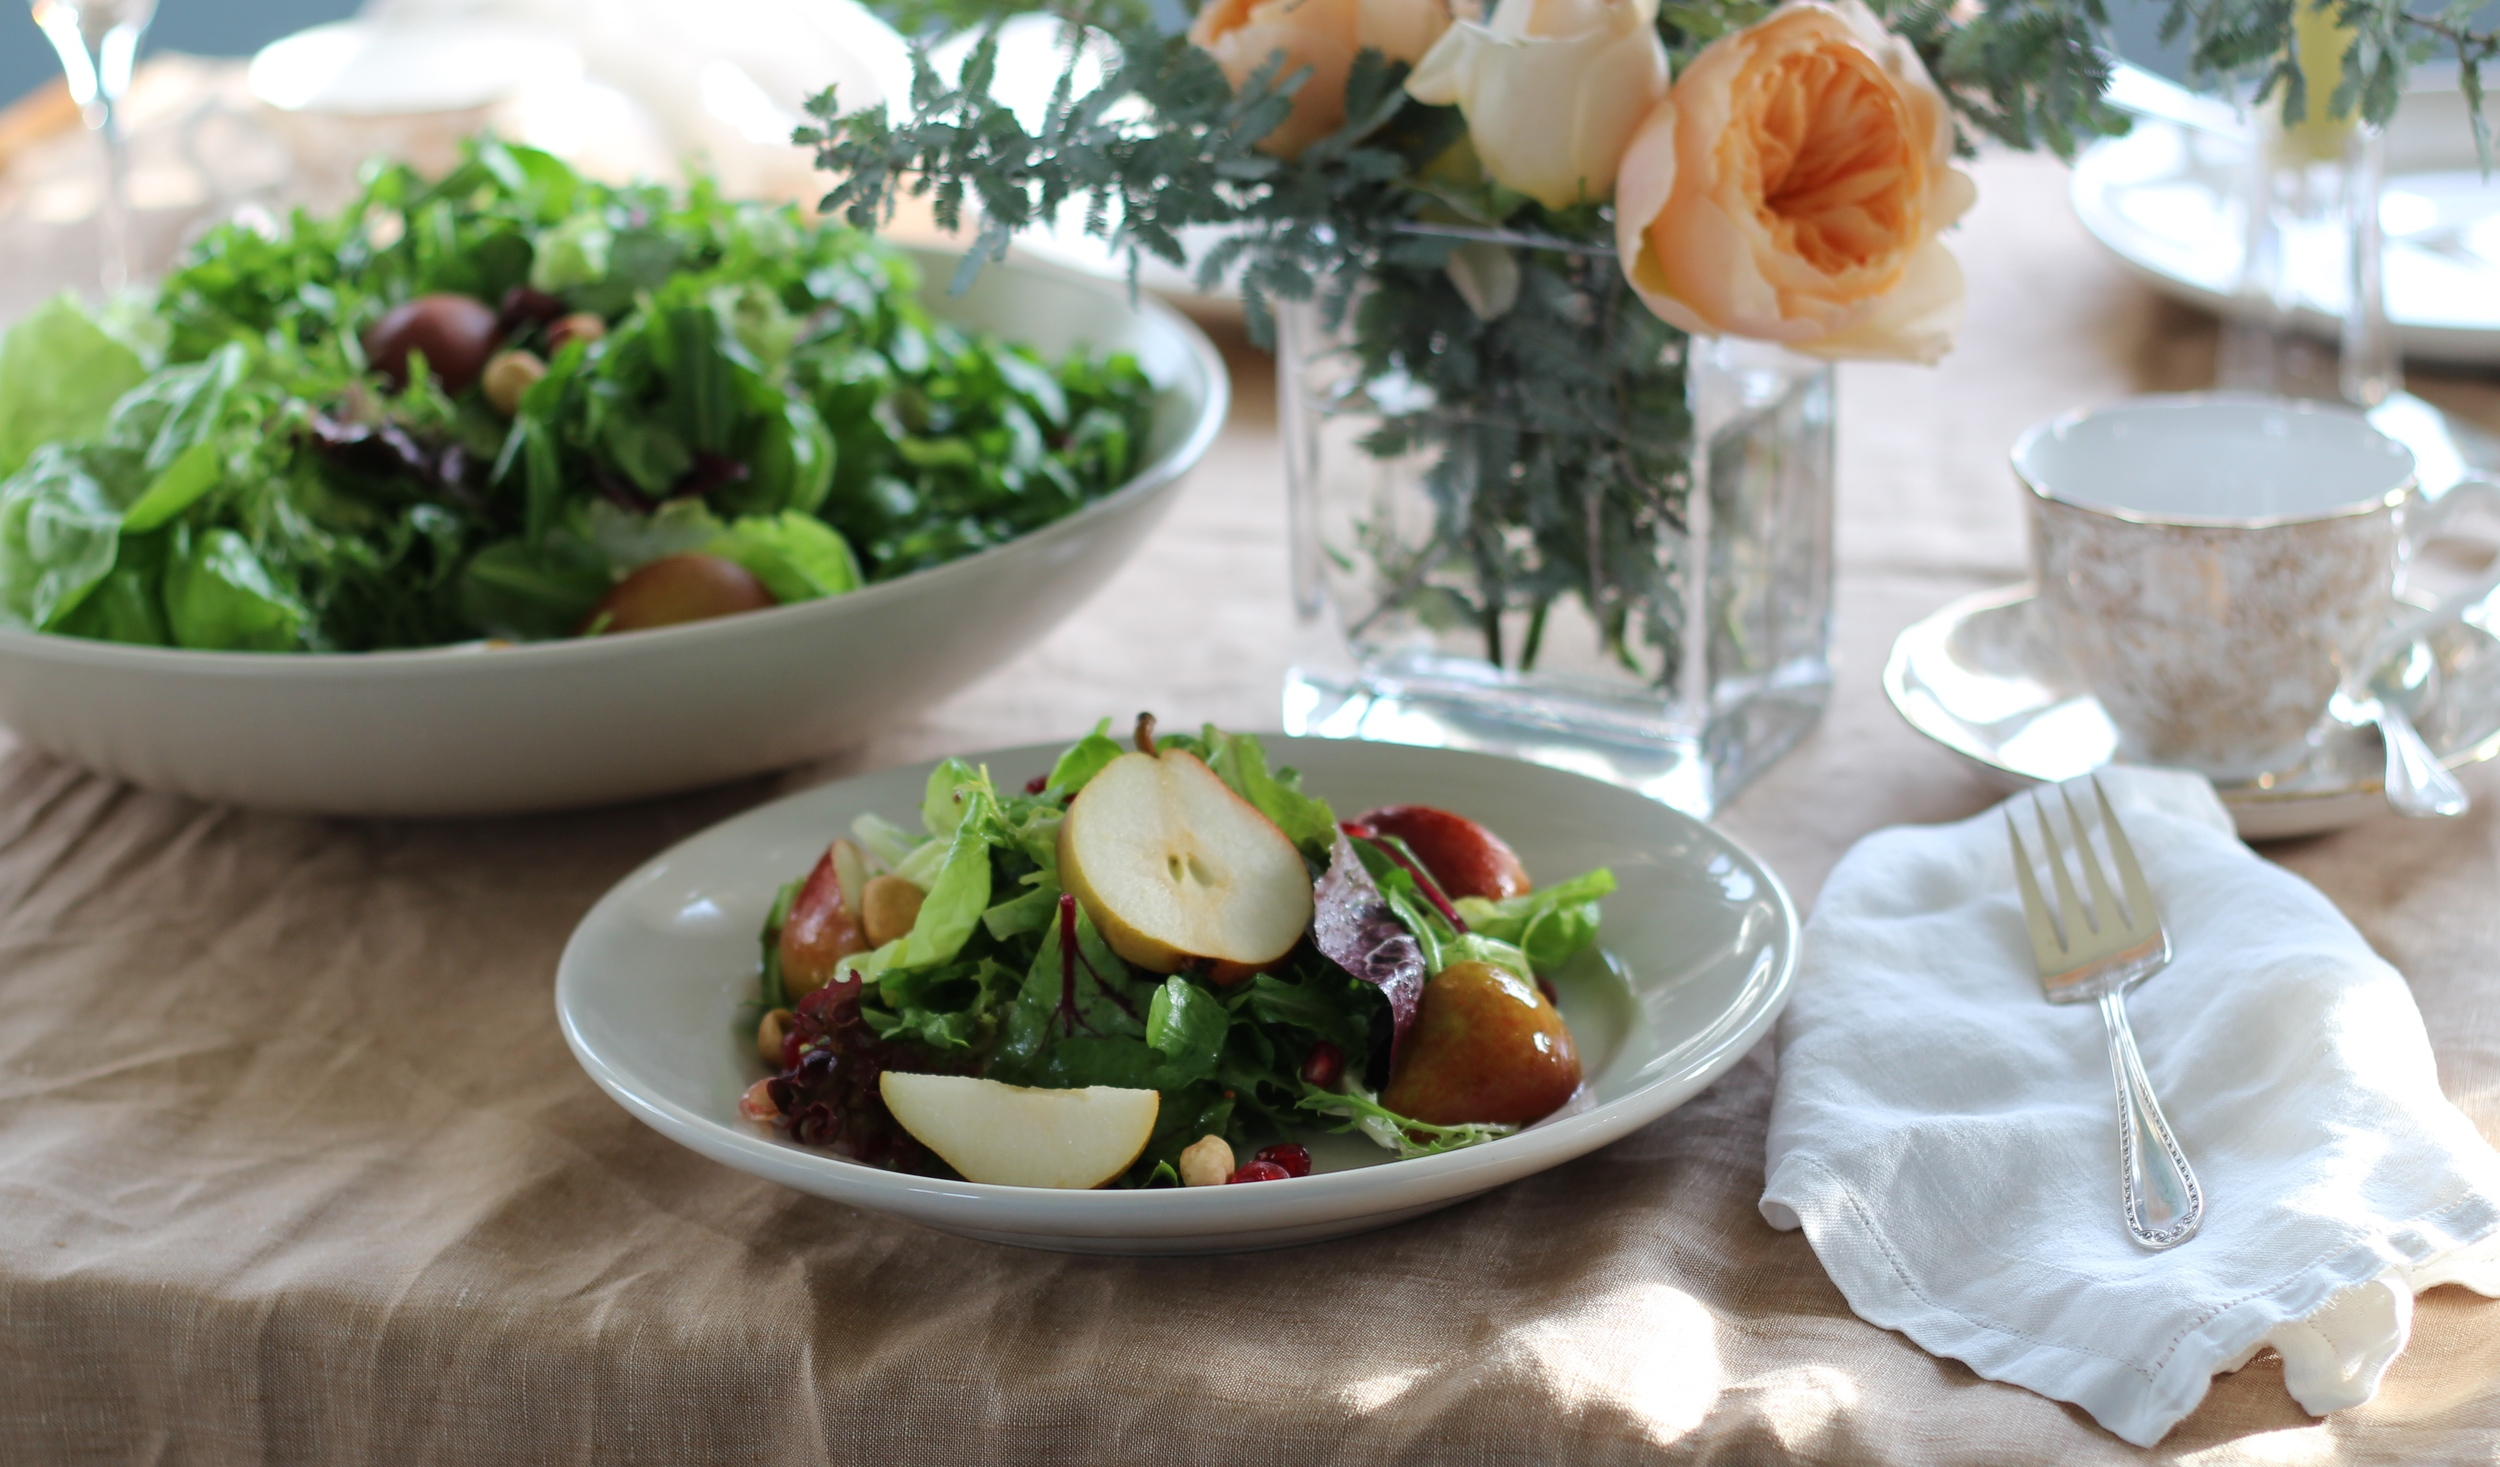 Oregon salad with pears and hazelnuts, recipe by Thread & Whisk